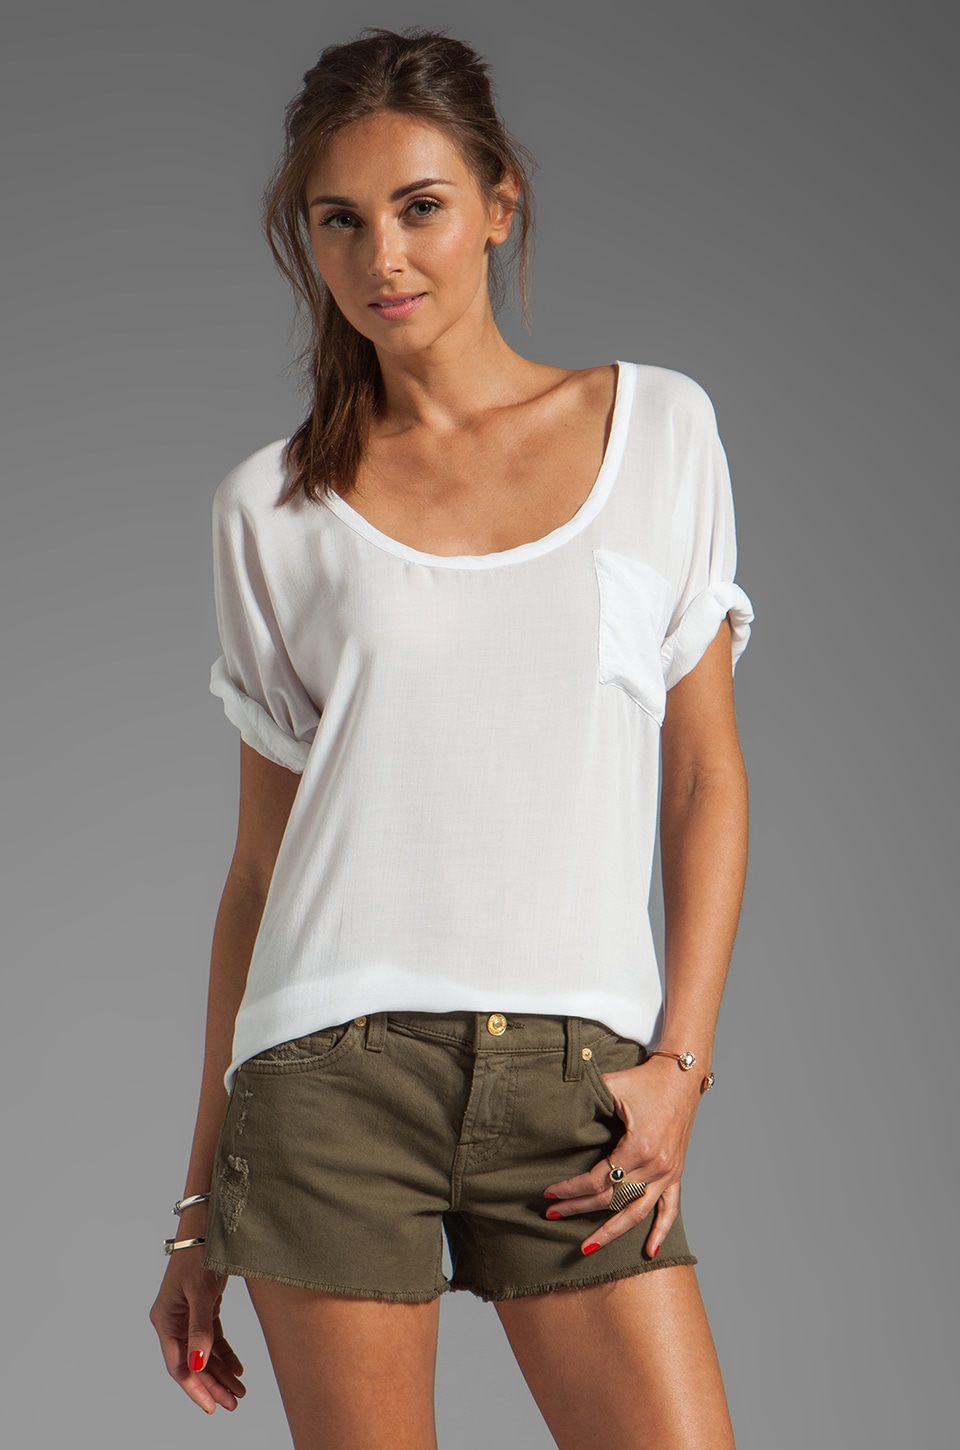 James Perse Soft Woven Pocket Tee in White